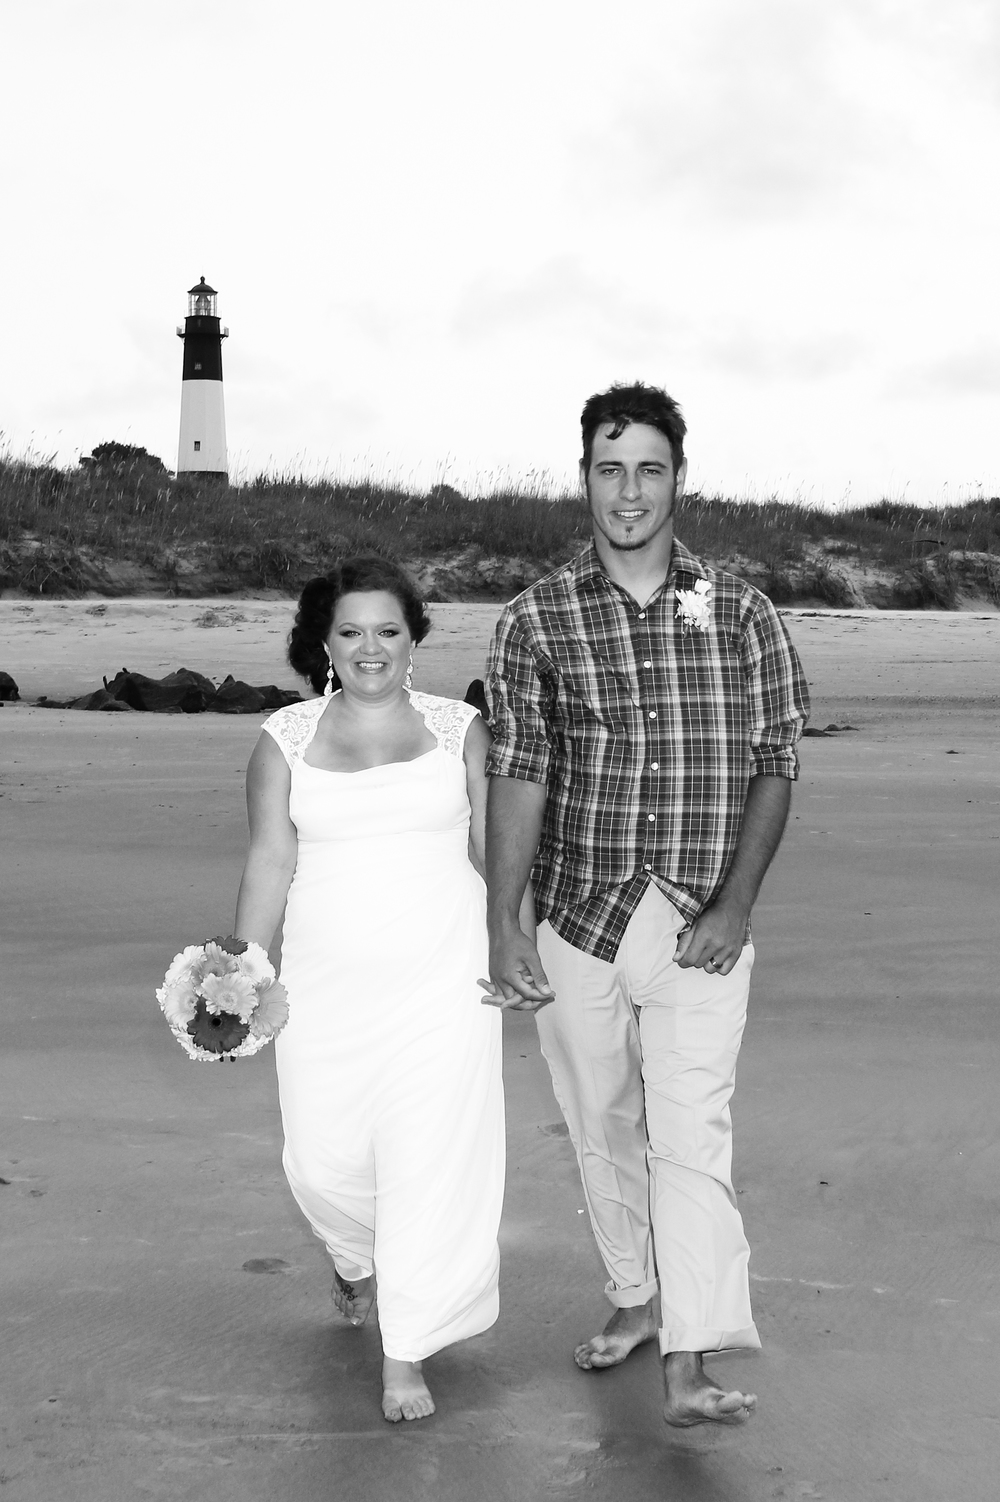 Tybee Island GA Lighthouse beach wedding